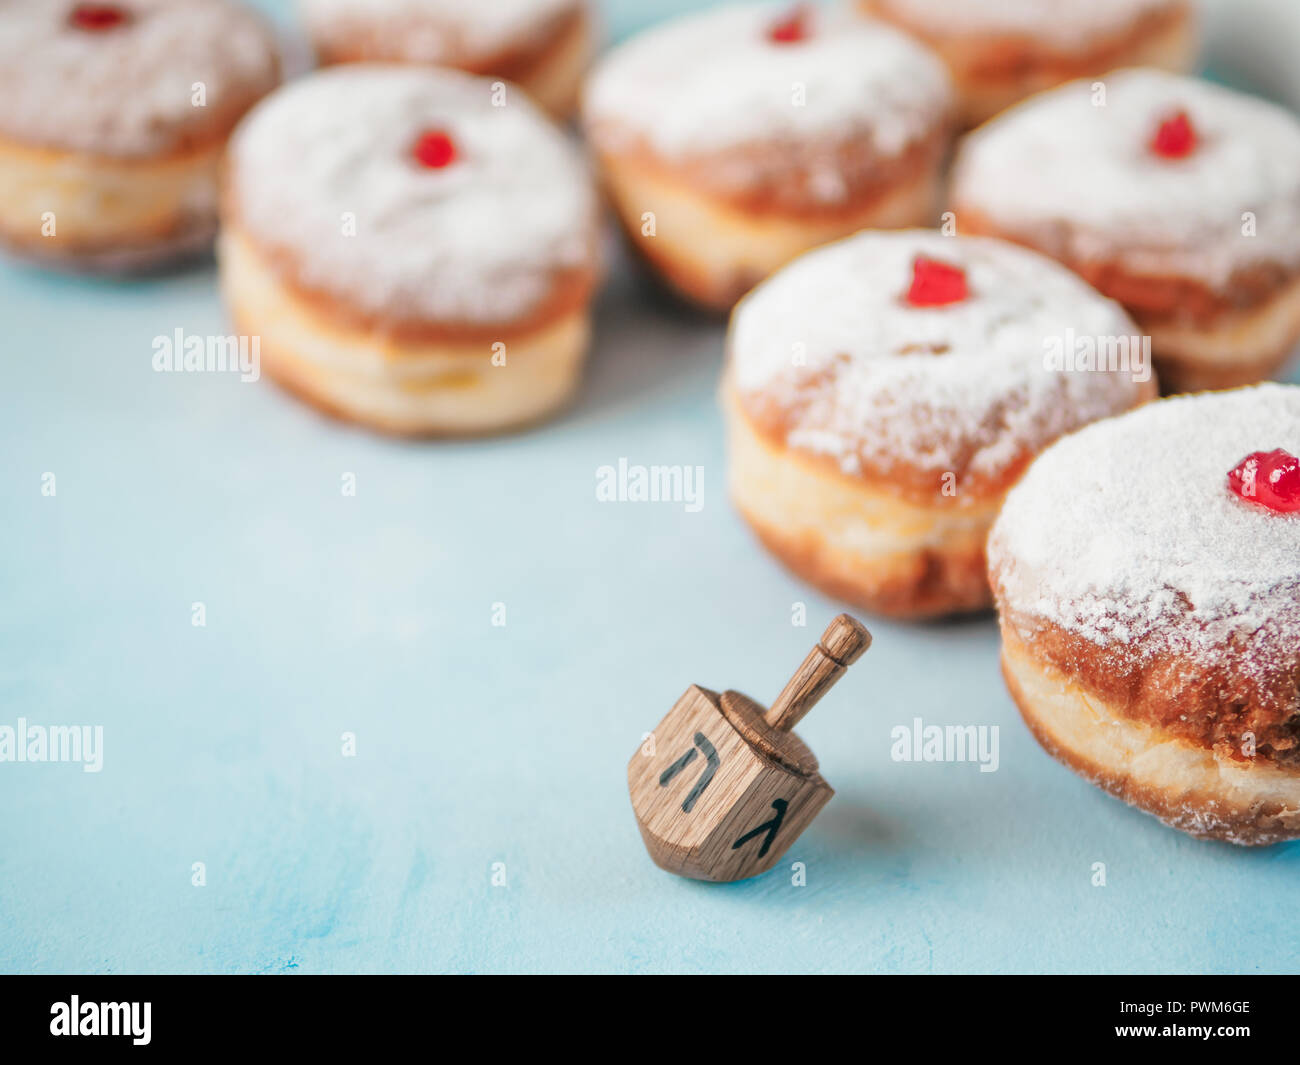 Jewish holiday Hanukkah concept and background. Hanukkah food doughnuts and traditional spinnig dreidl or dredel on blue background. Copy space for text. Shallow DOF - Stock Image